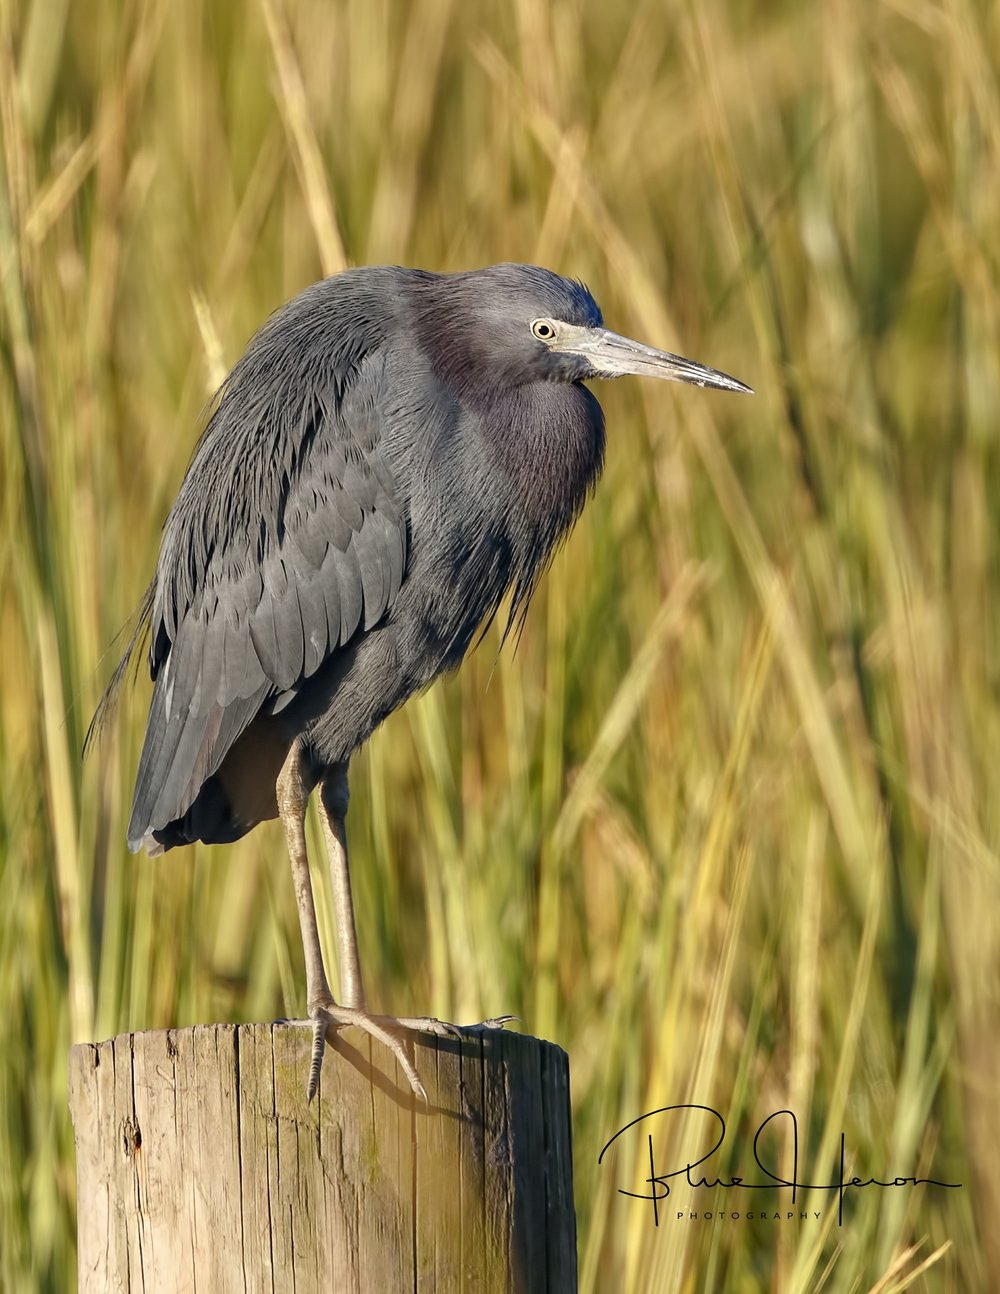 Broward Bob the Little Blue Heron has his favorite piling also..